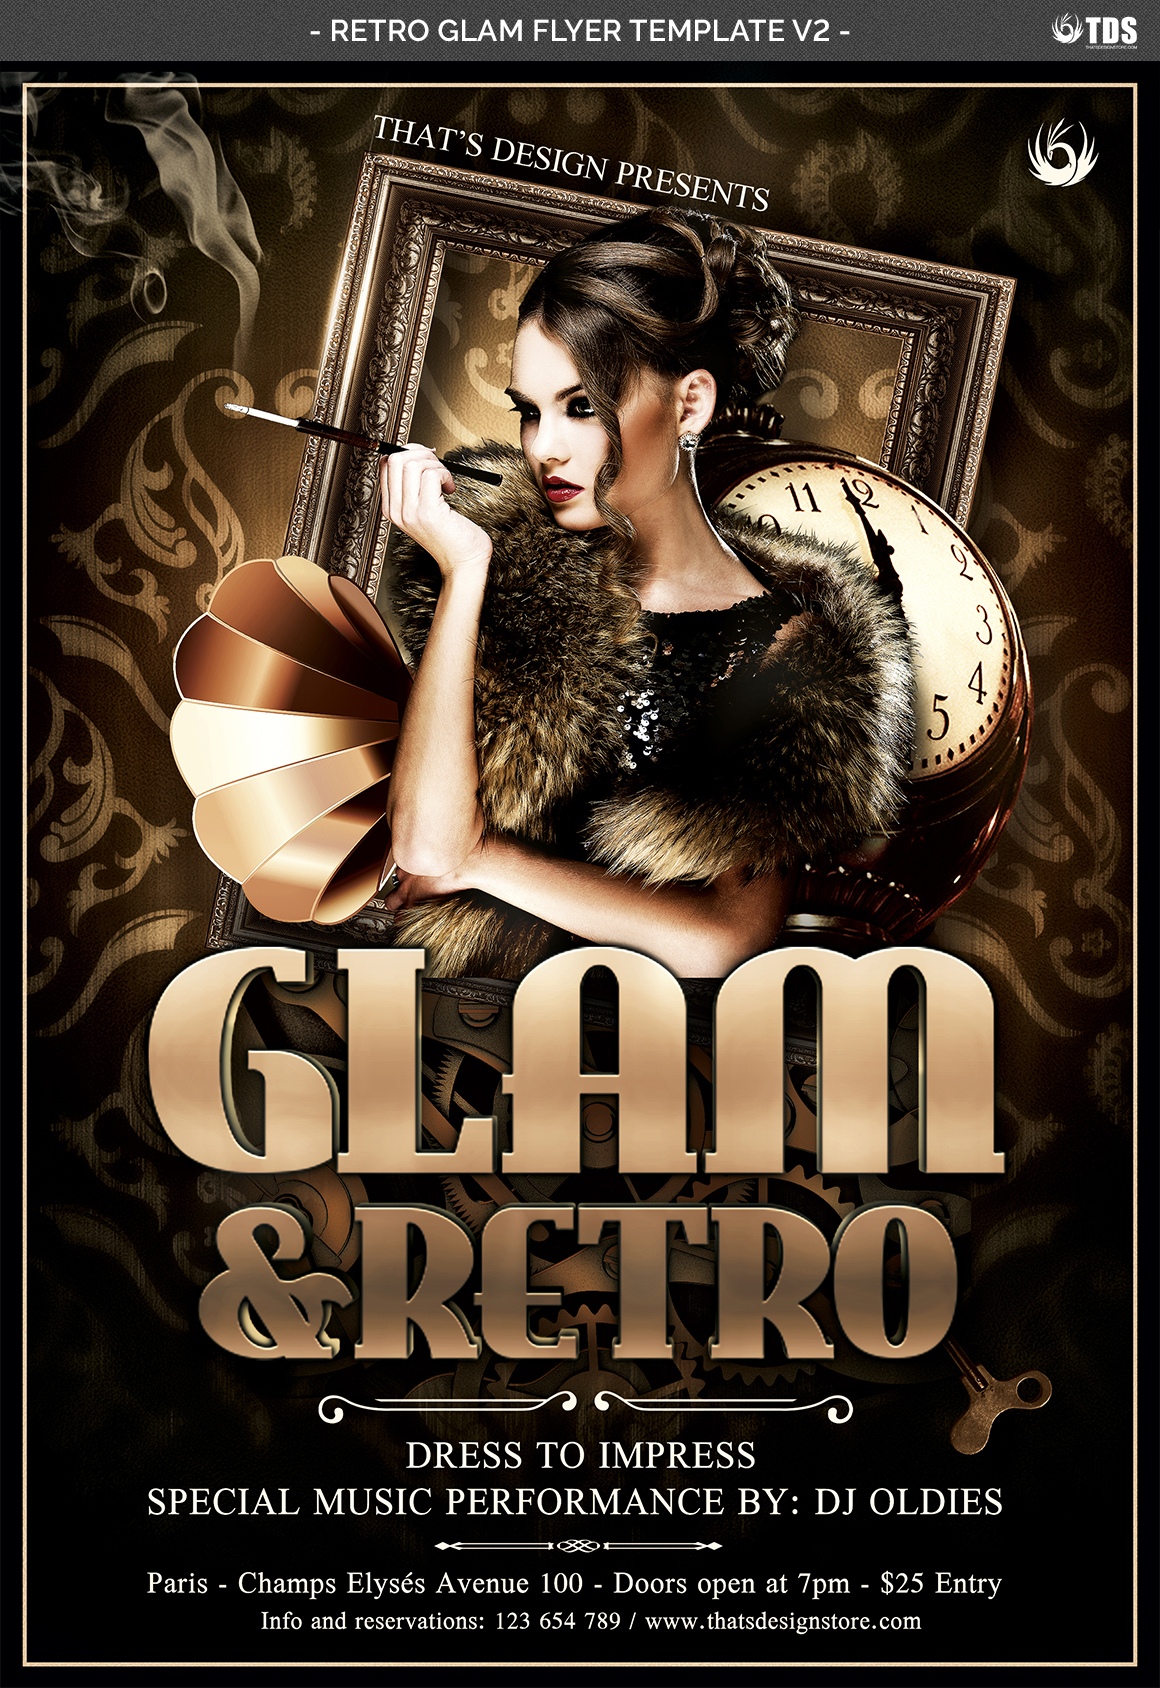 Retro Glam Flyer Template V2 example image 4